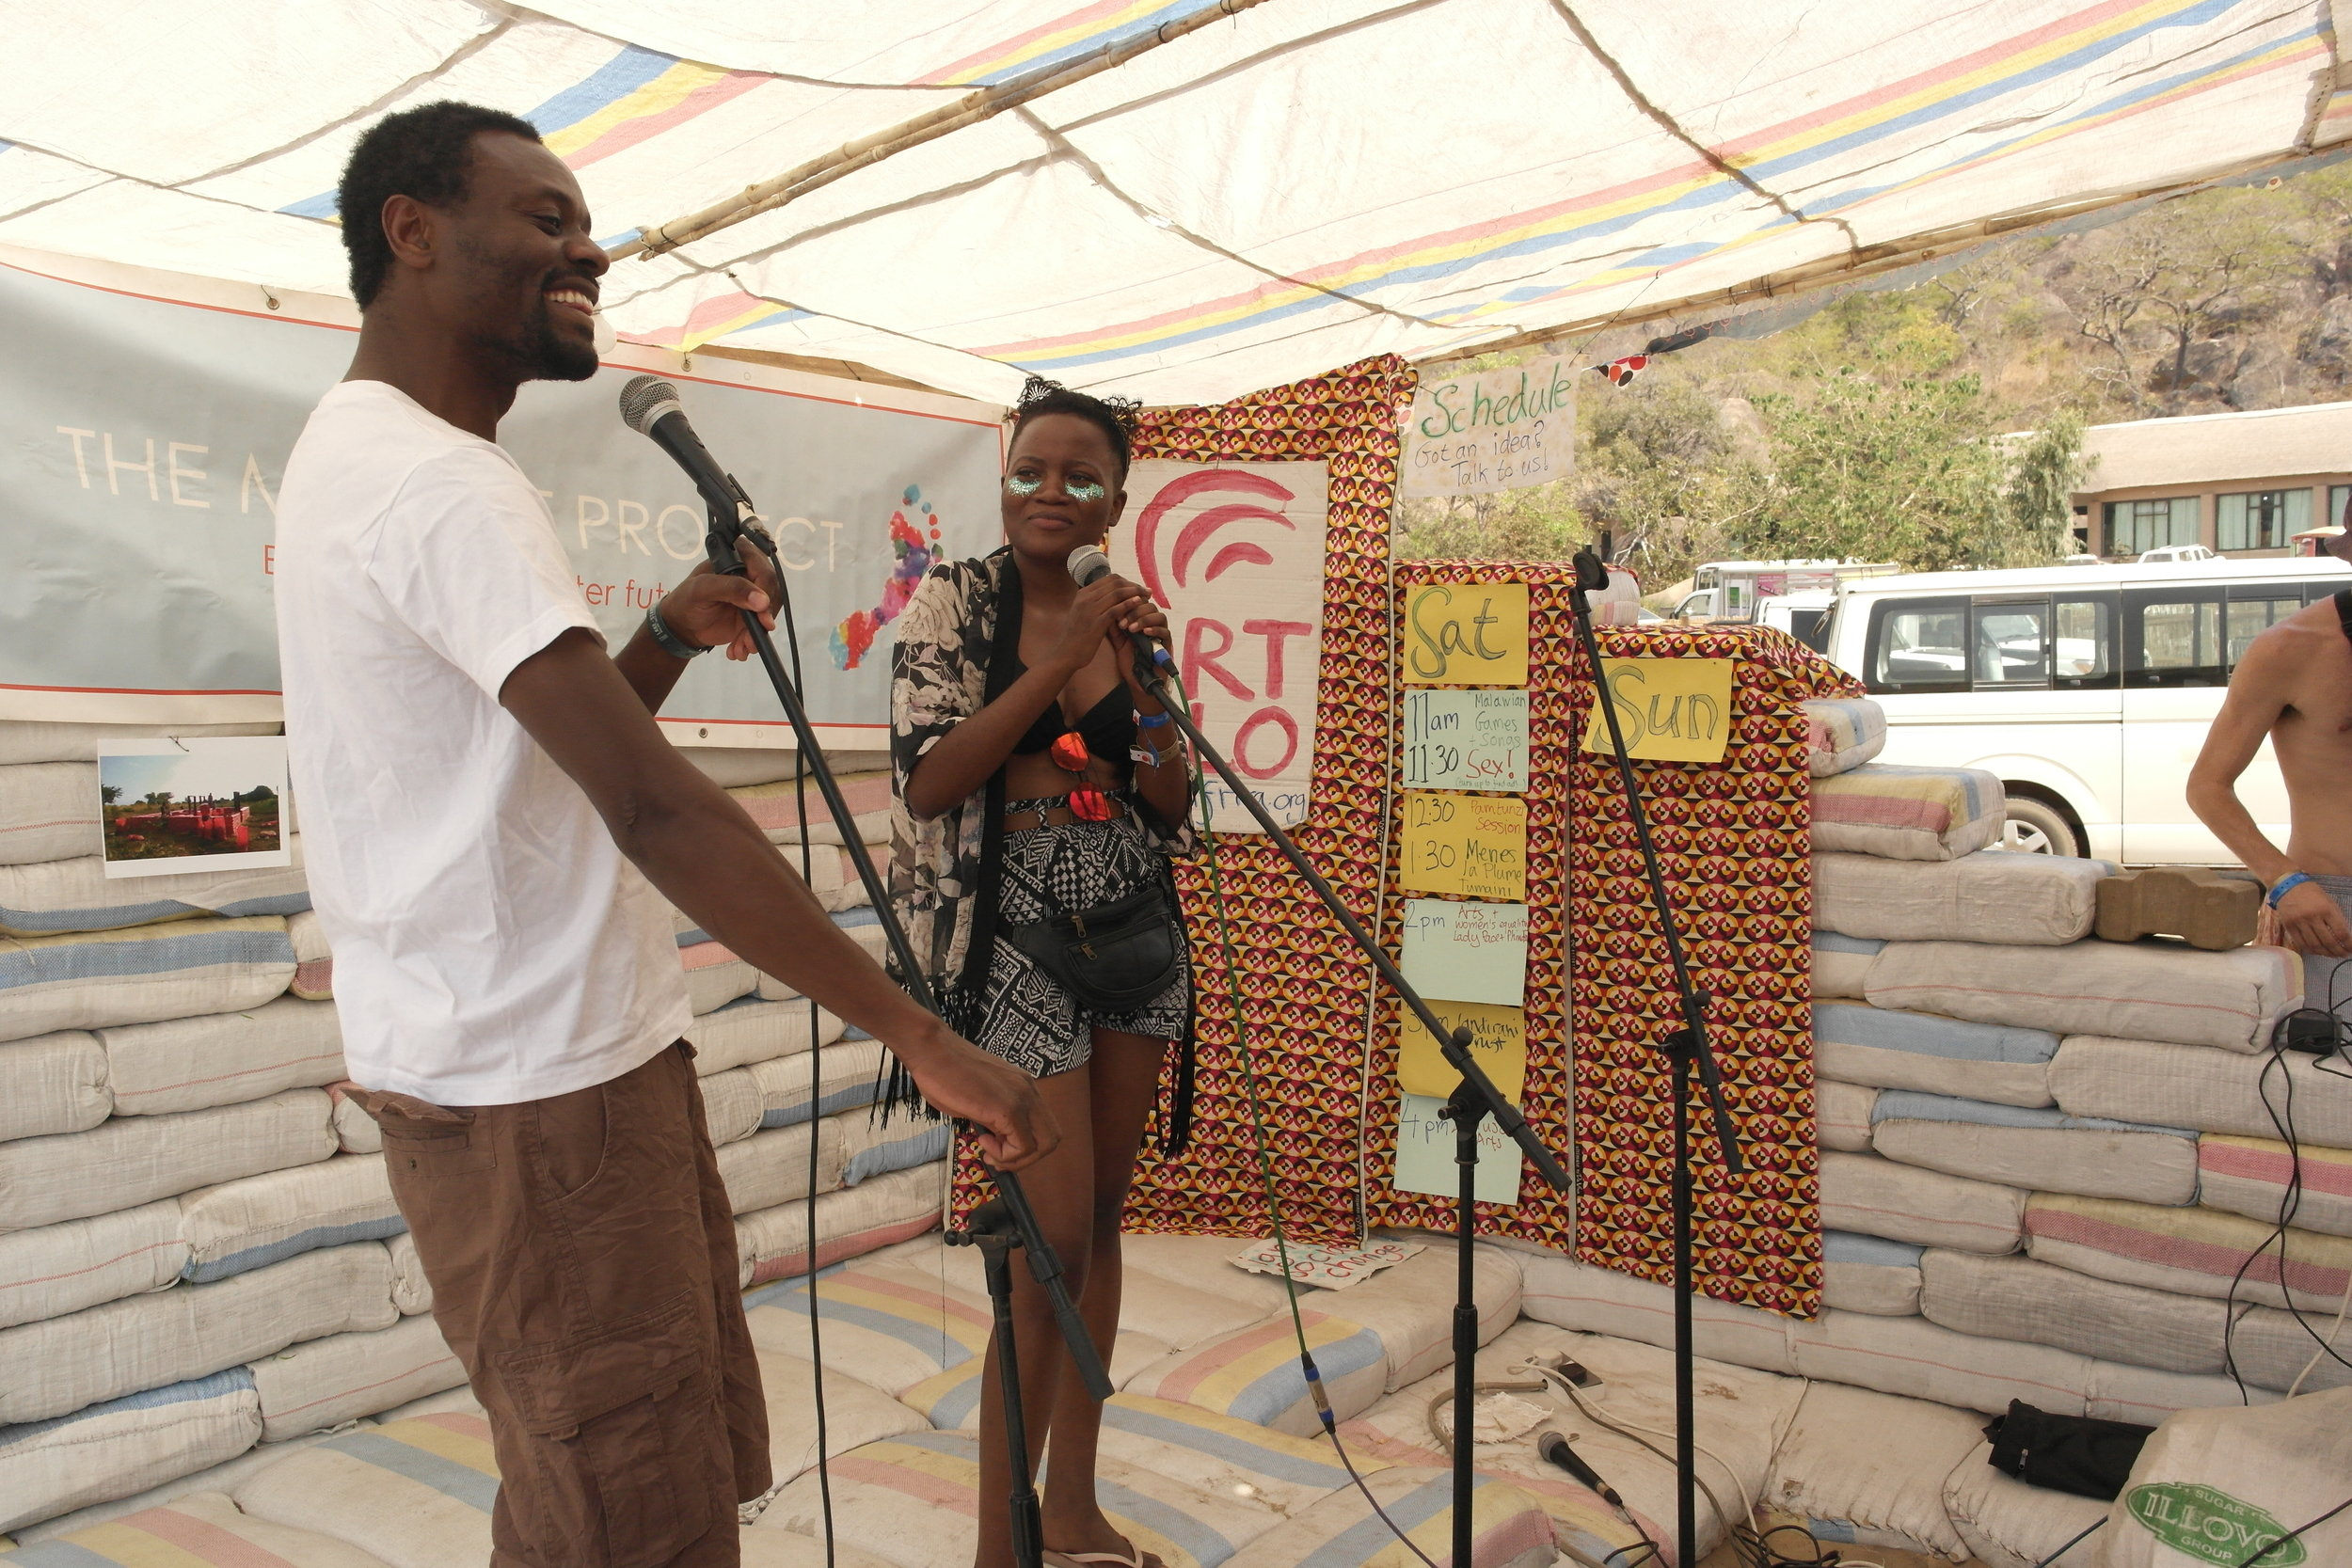 Tumaini Festival founder Menes La Plume talked about the inspiration behind creating the world's first major festival to take place in a refugee camp.